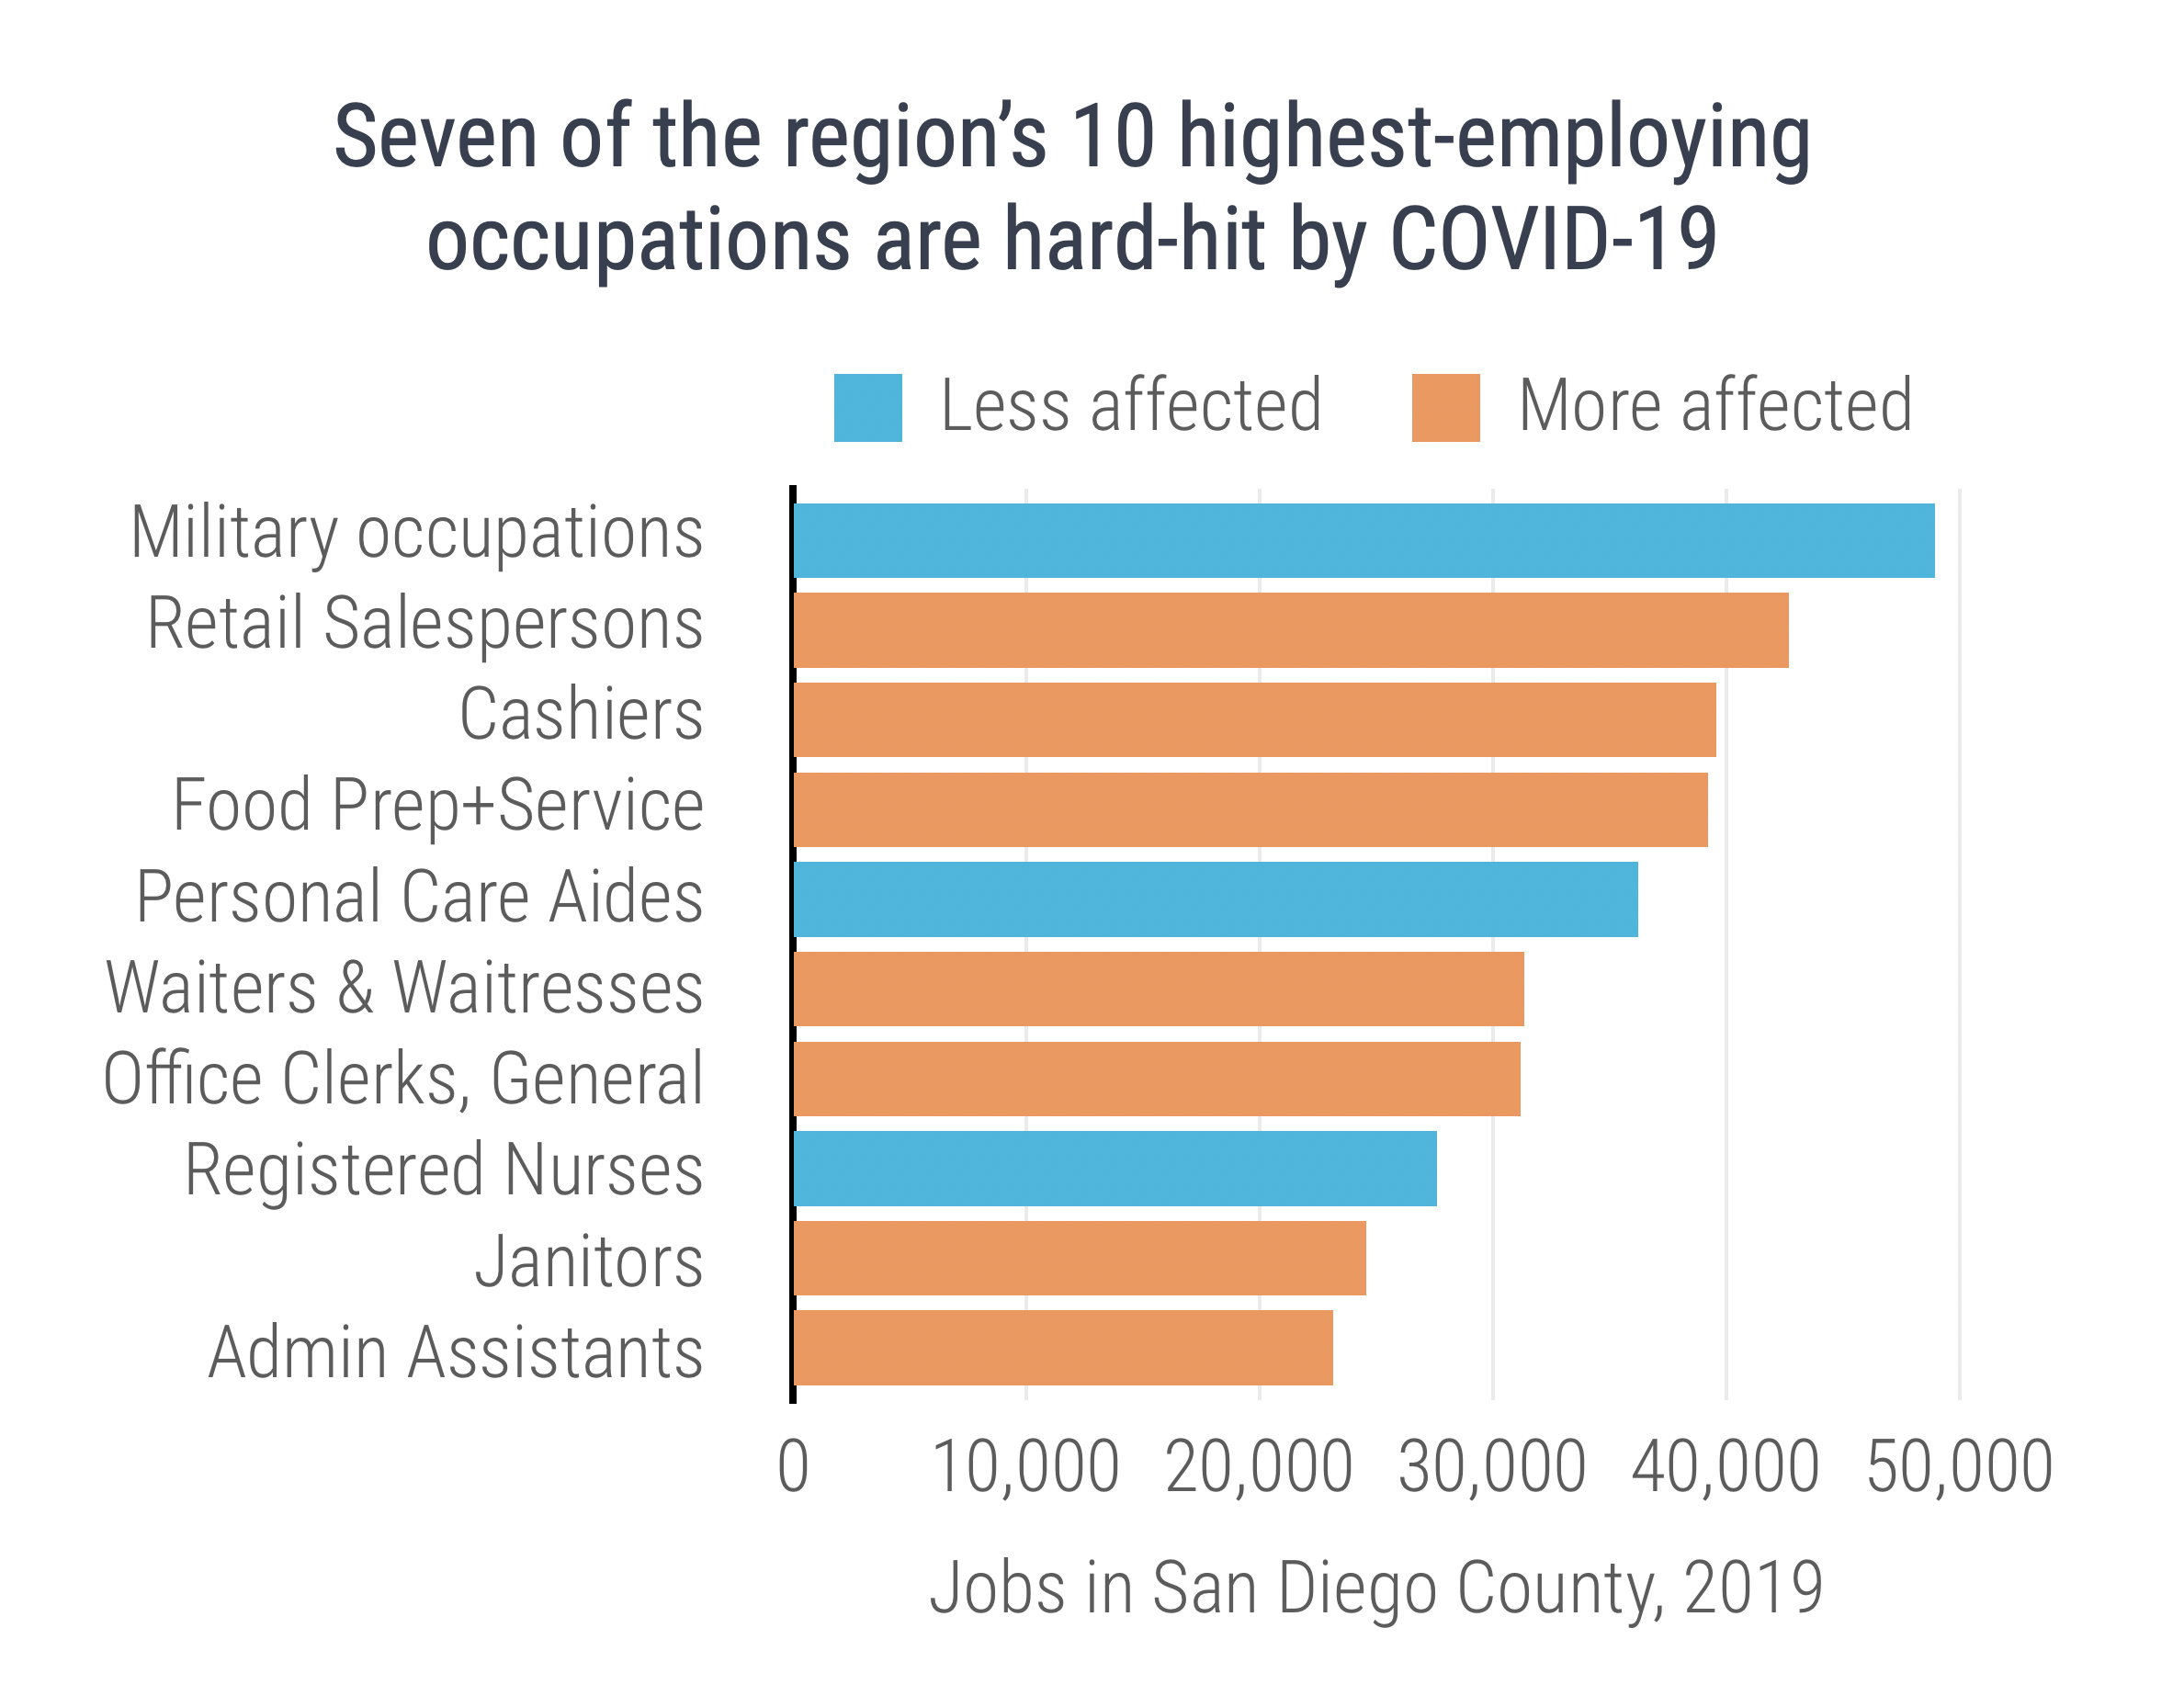 COVID-19 Impacted Occupations